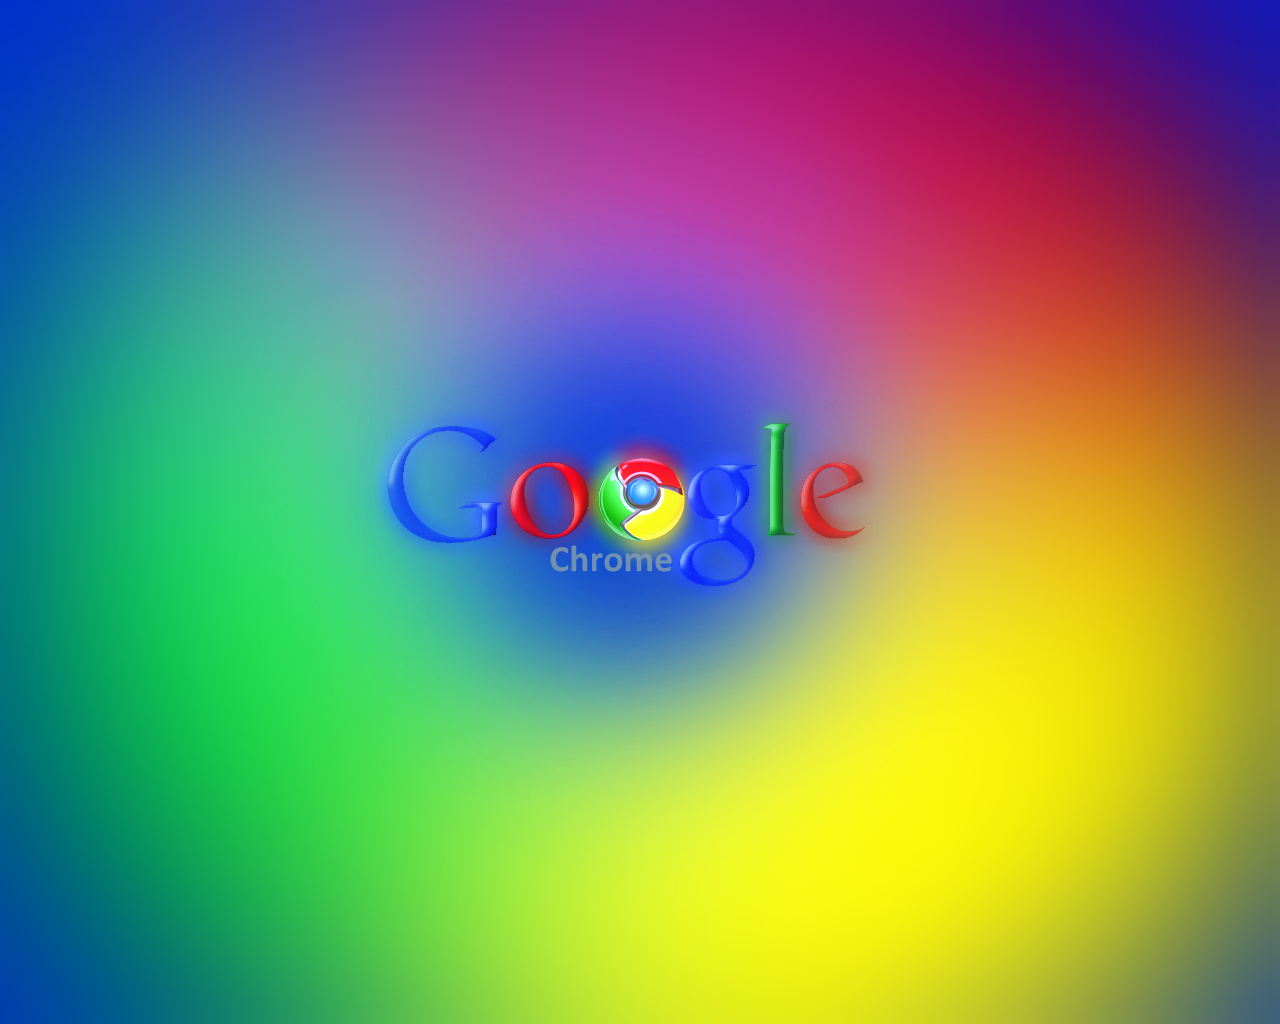 49+] Google Chrome Wallpaper Themes on WallpaperSafari